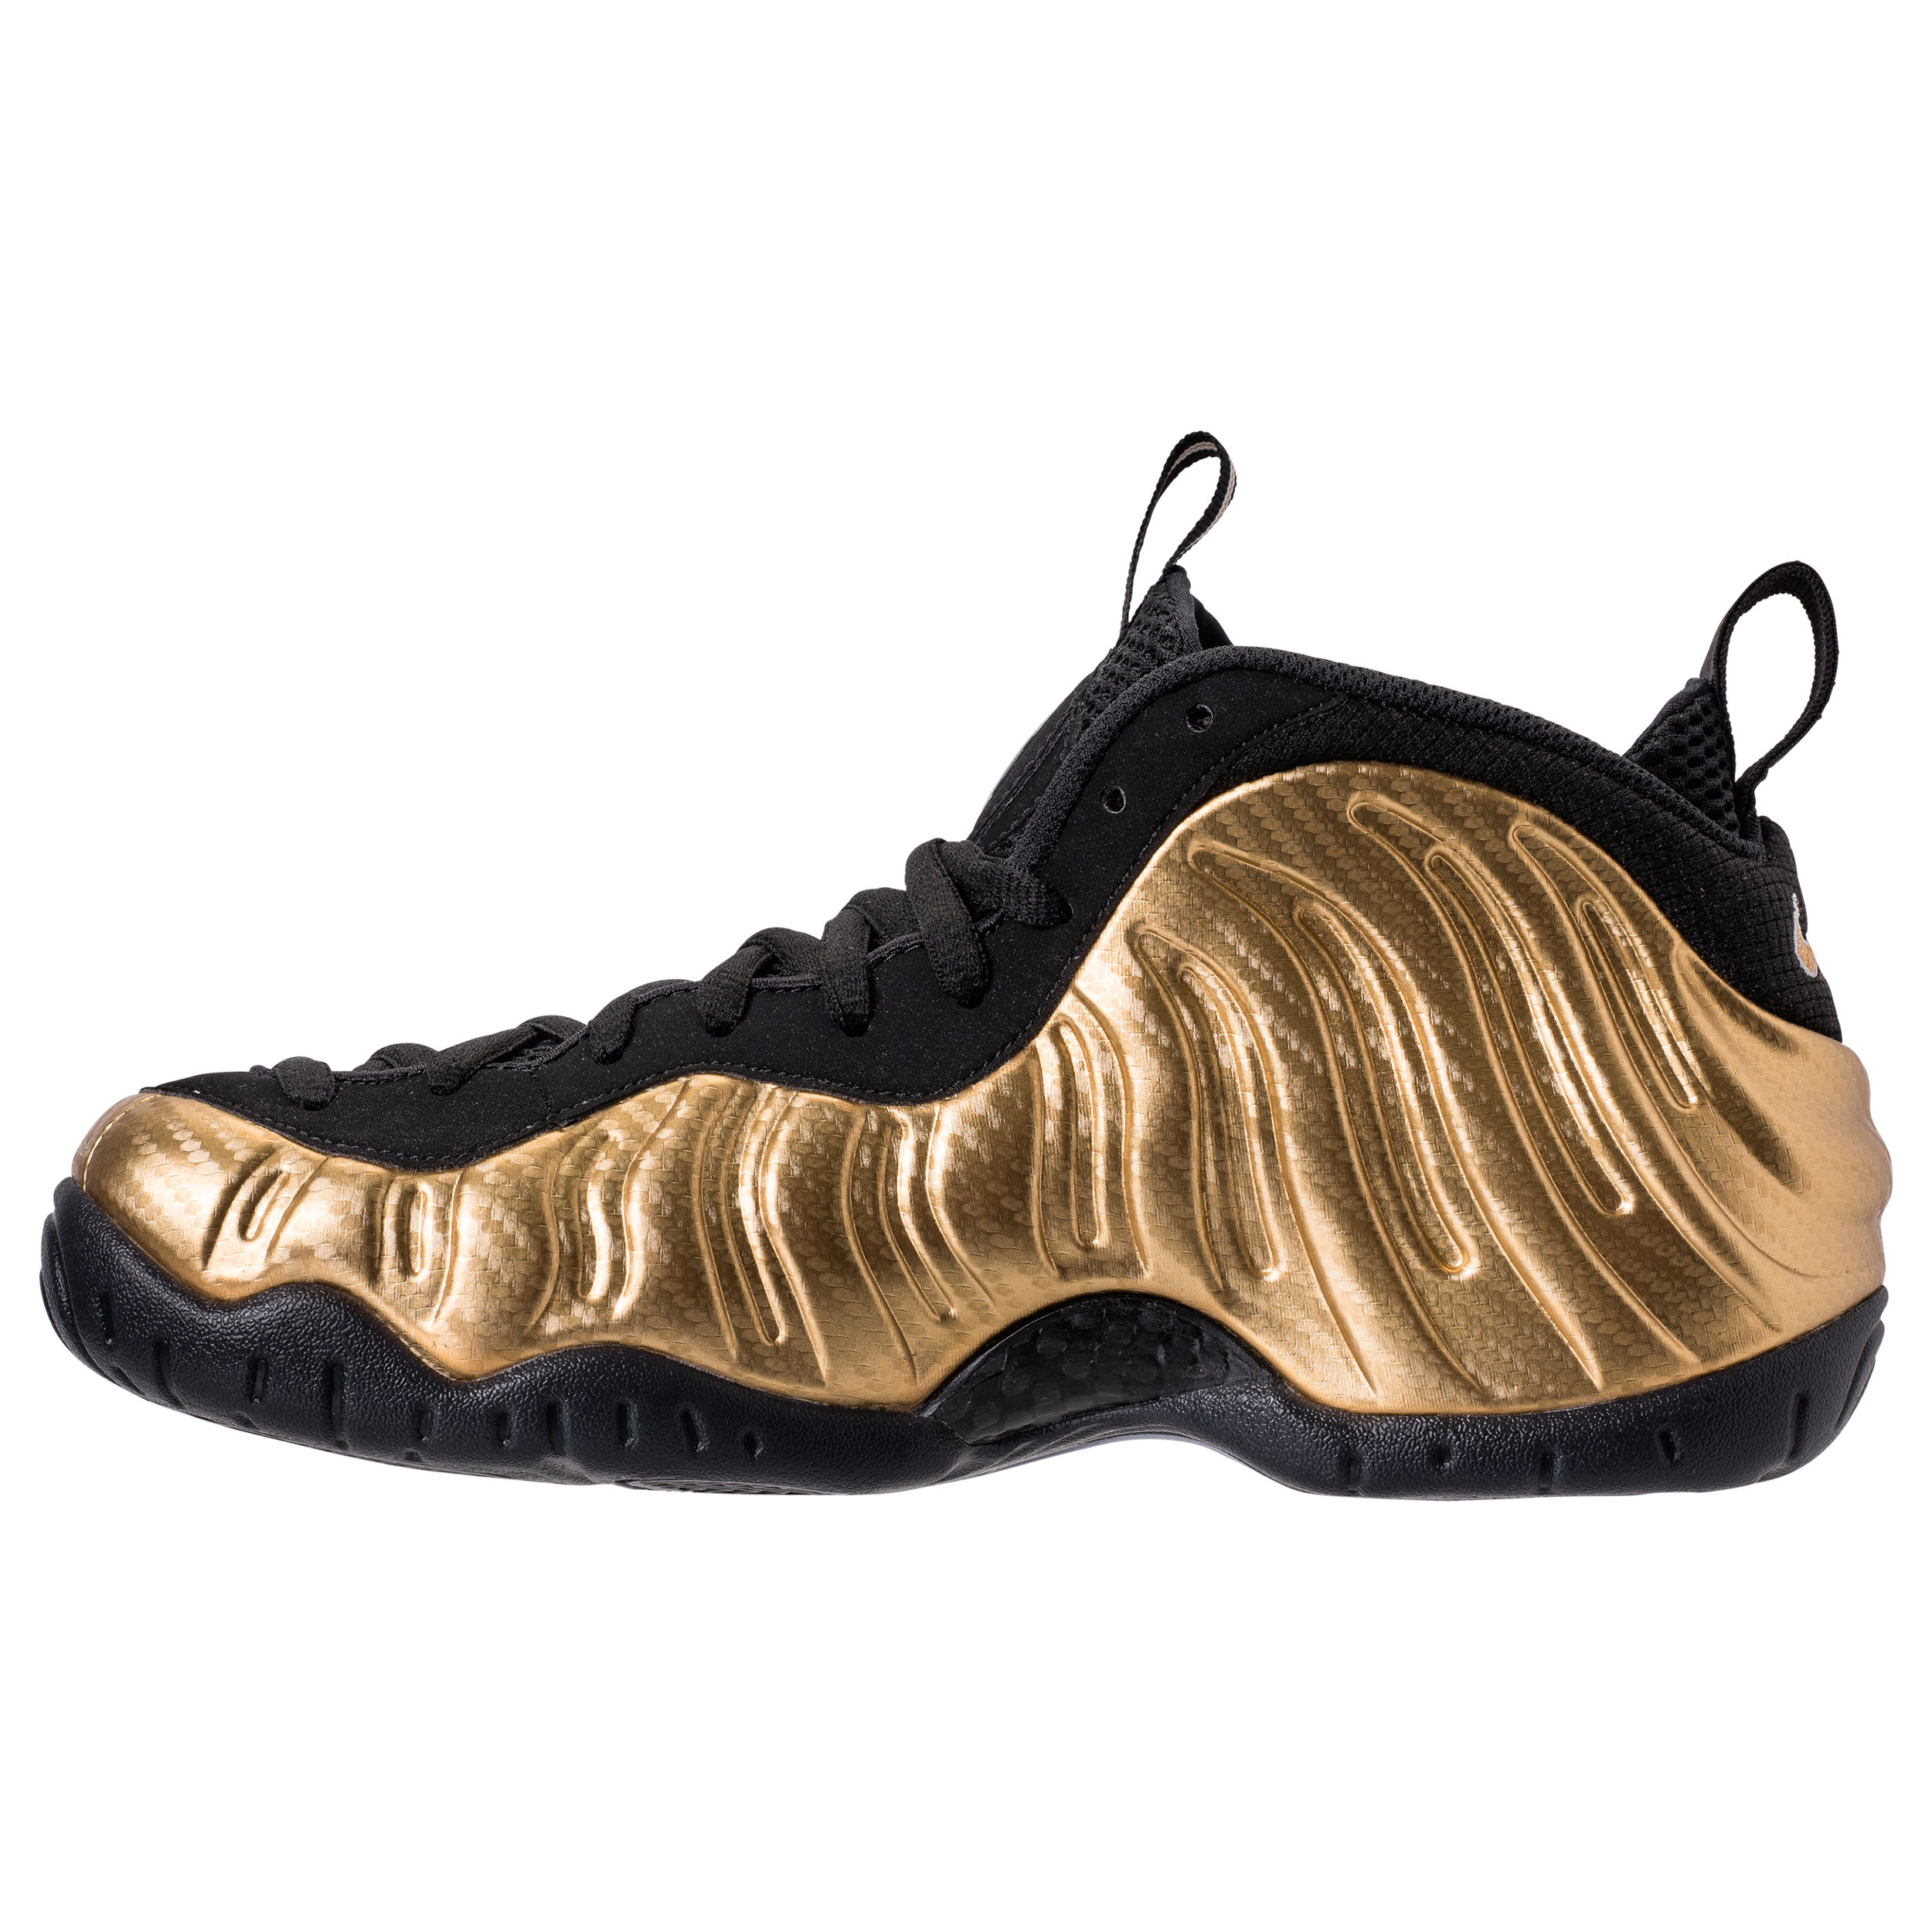 b49c1c15bdc nike air foamposite pro metallic gold 3 - WearTesters